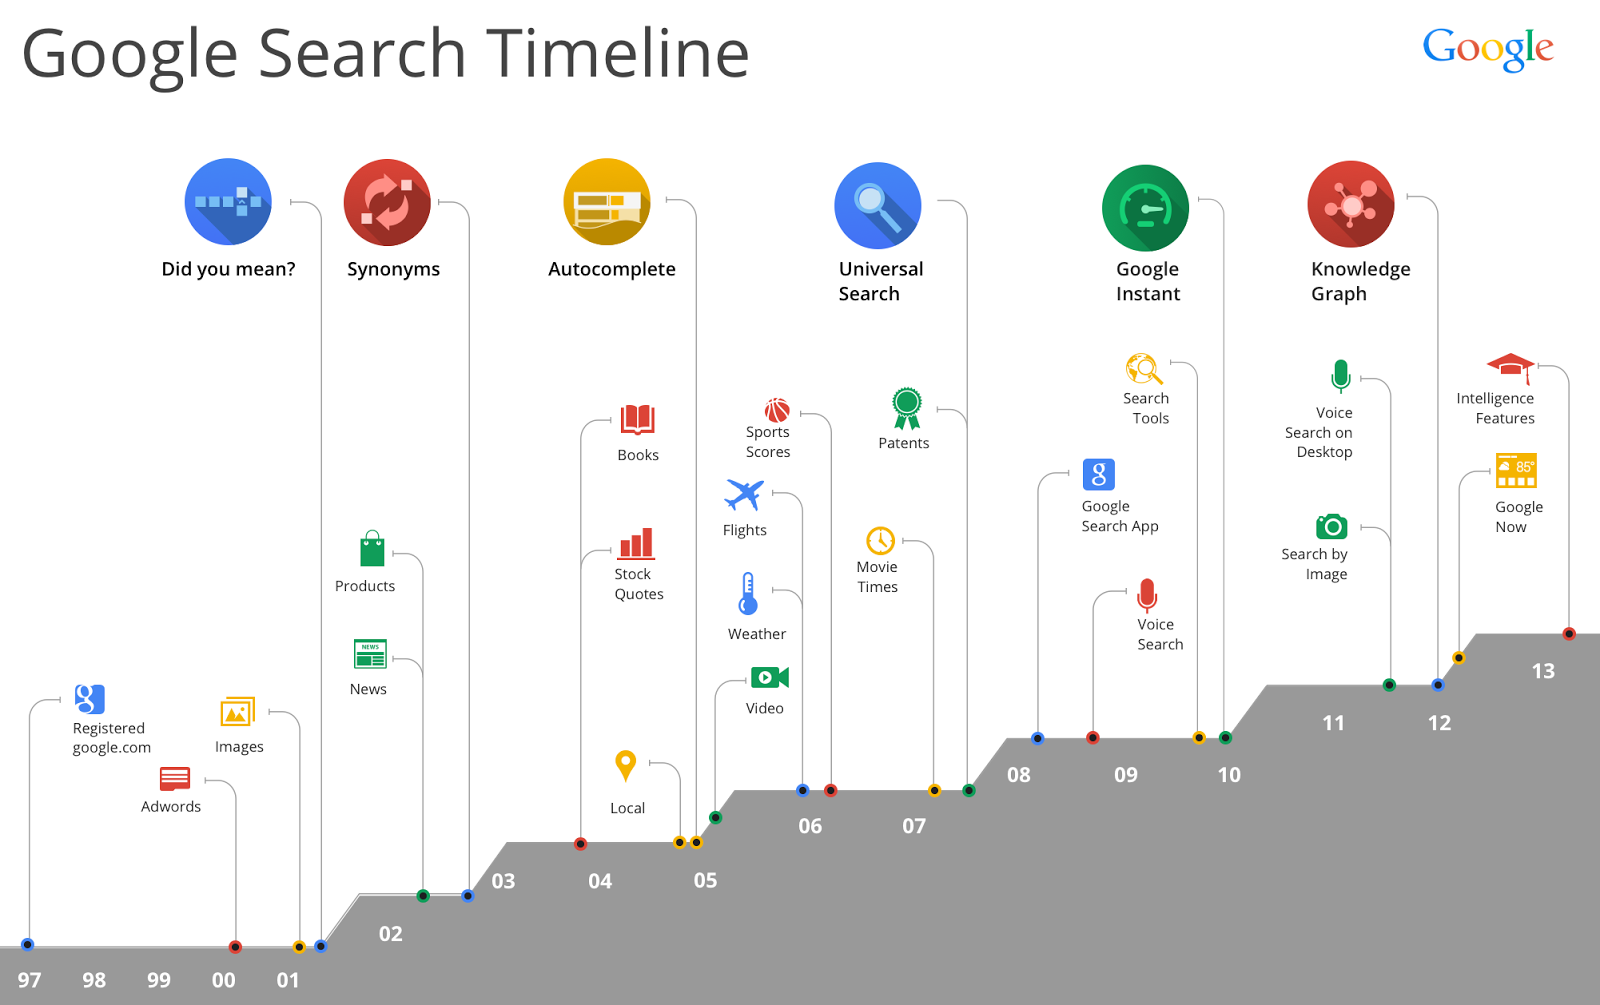 GoogleSearch Timeline